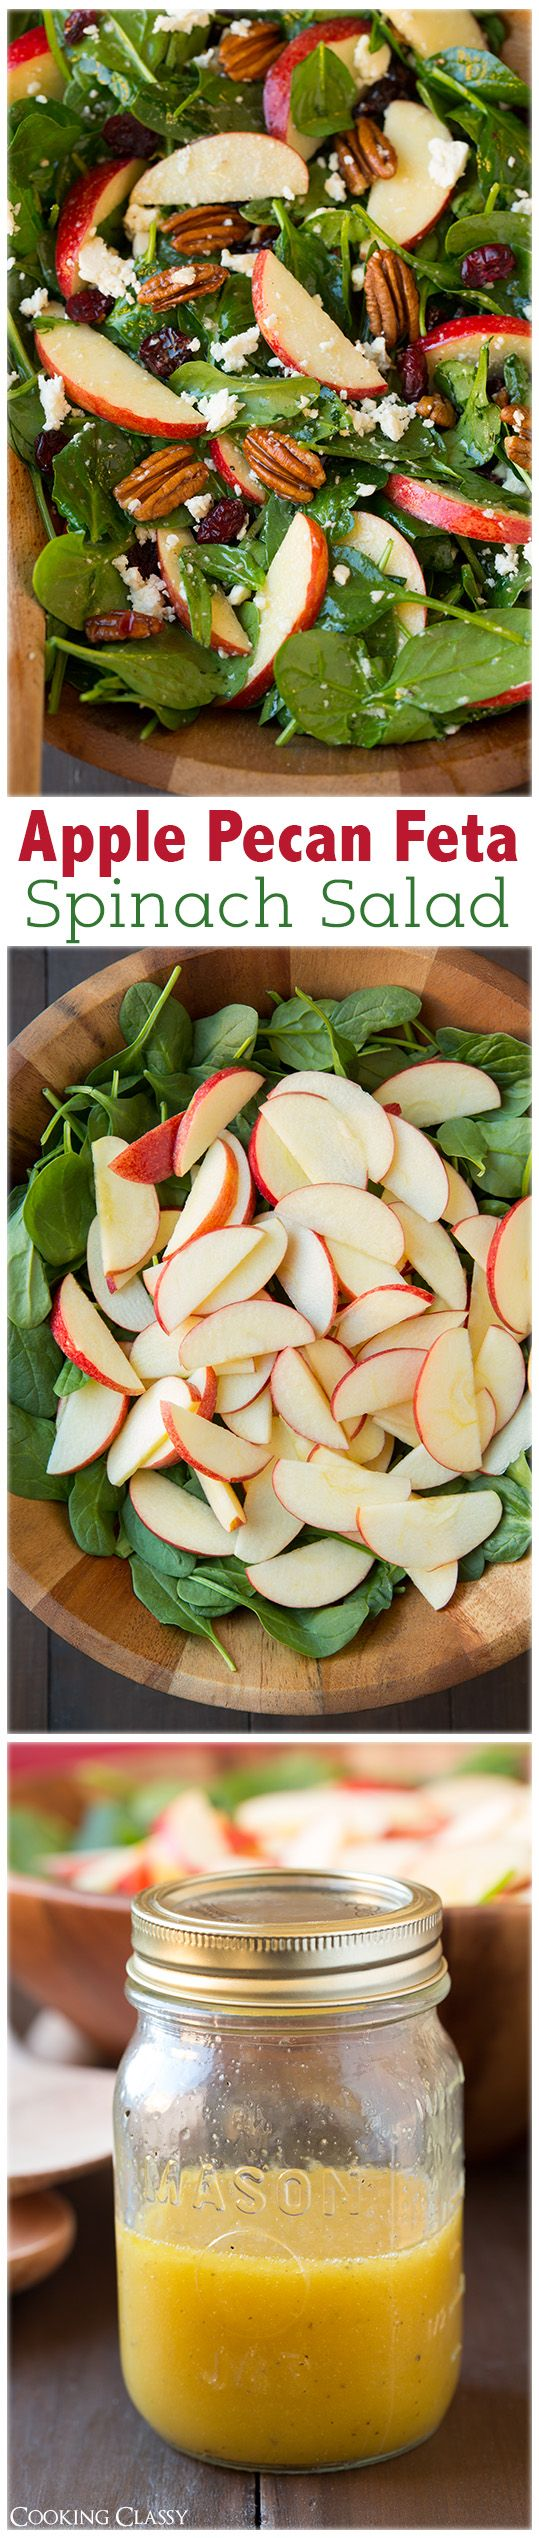 Apple Pecan Feta Spinach Salad with Maple Cider Vinaigrette - This salad is a…